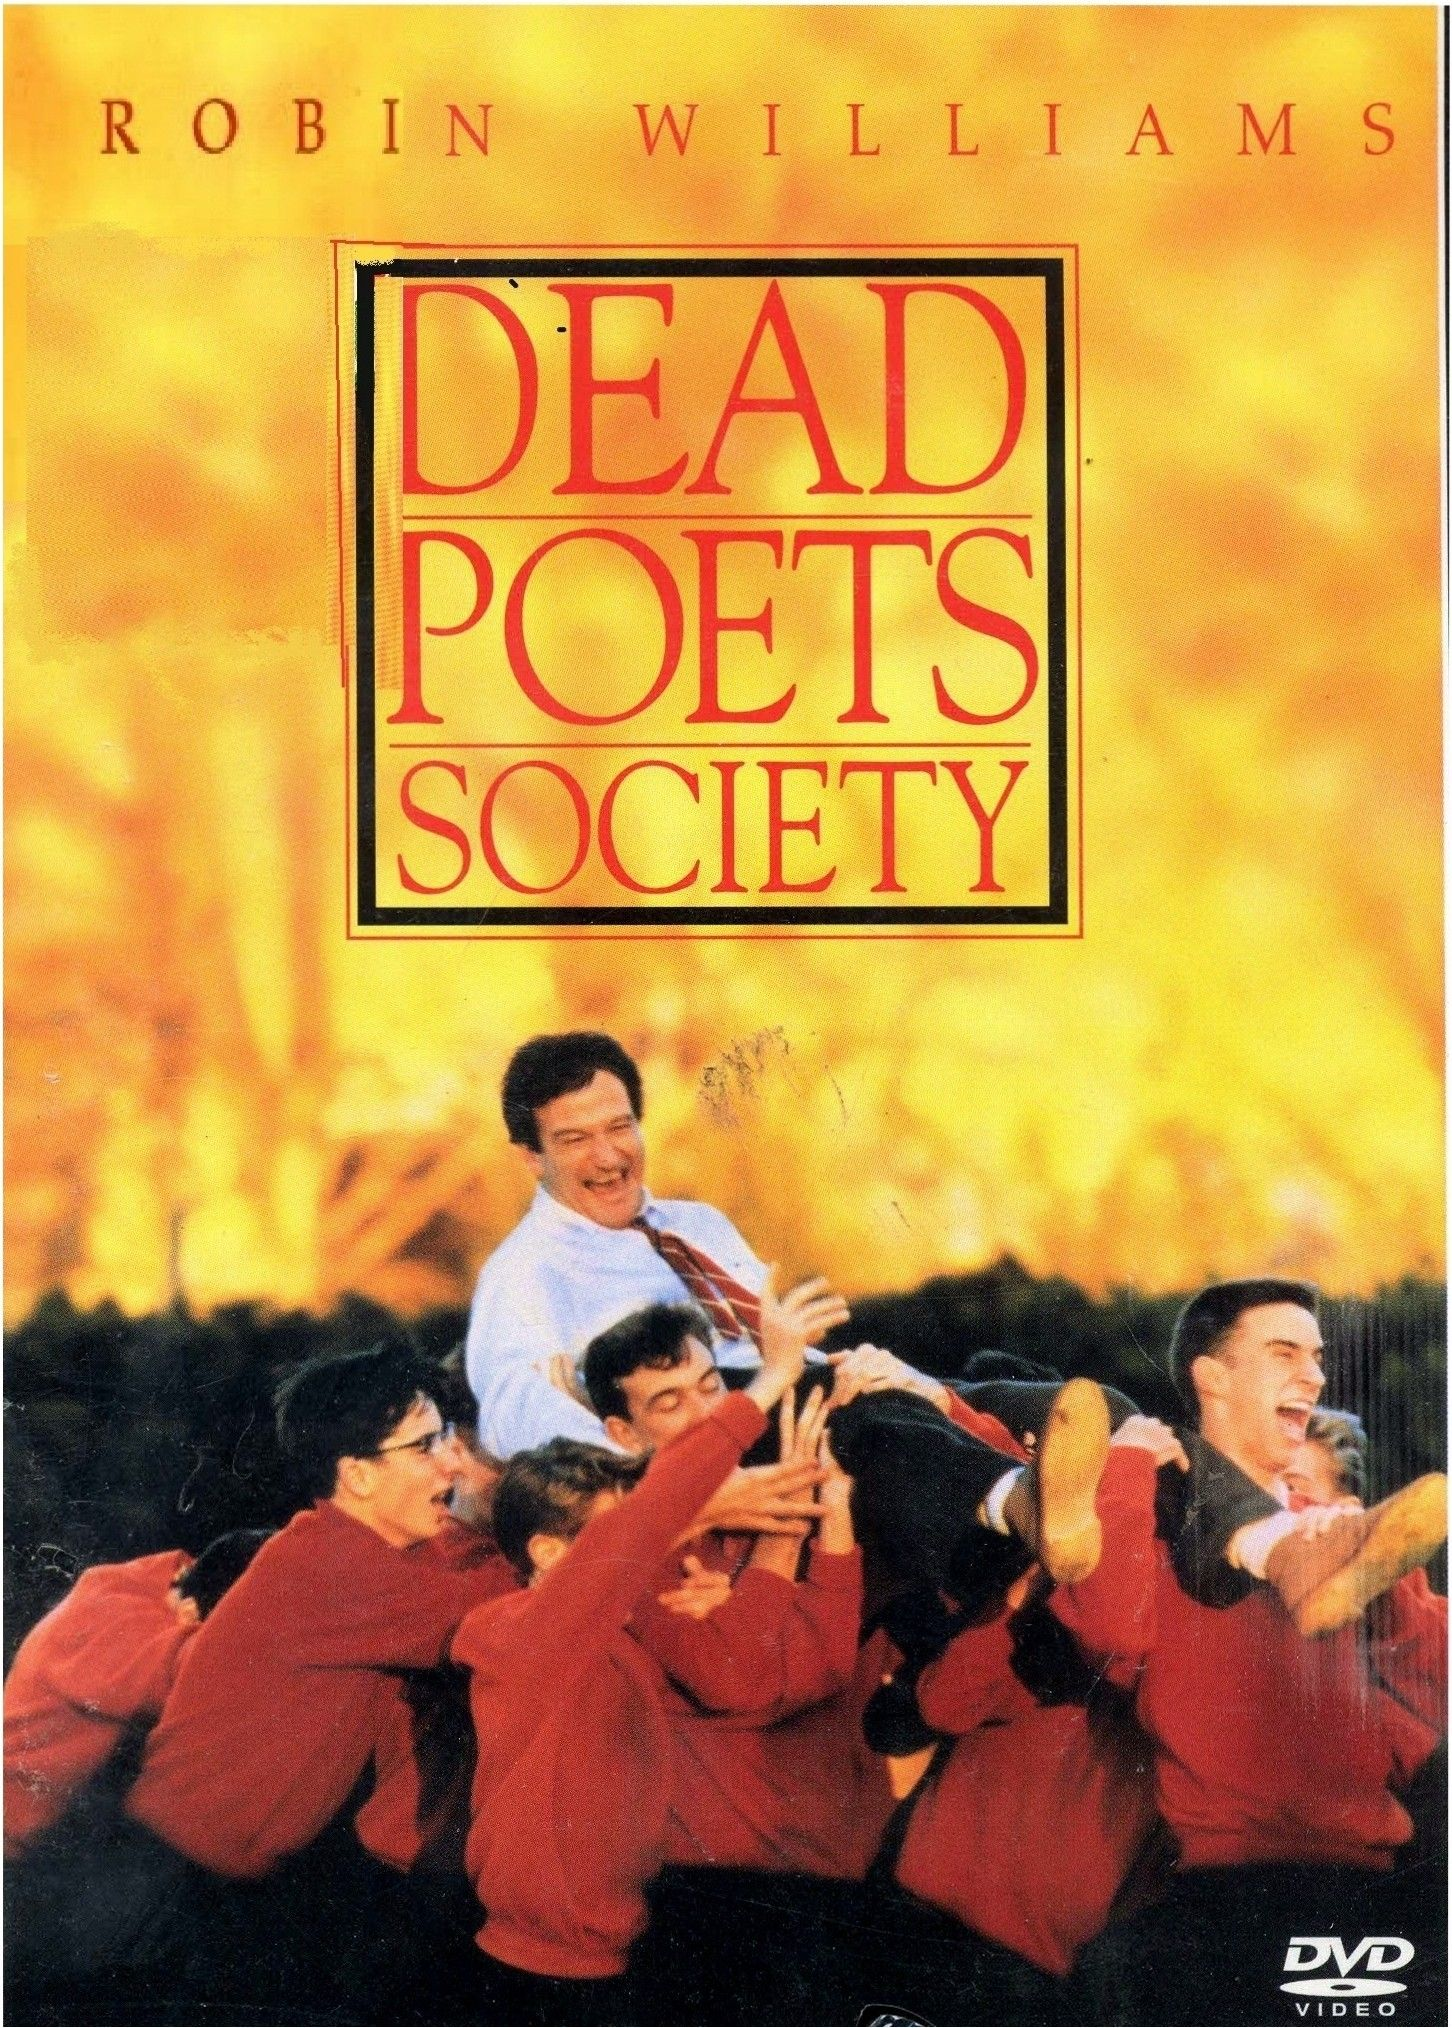 dead poets society poster - Google Search